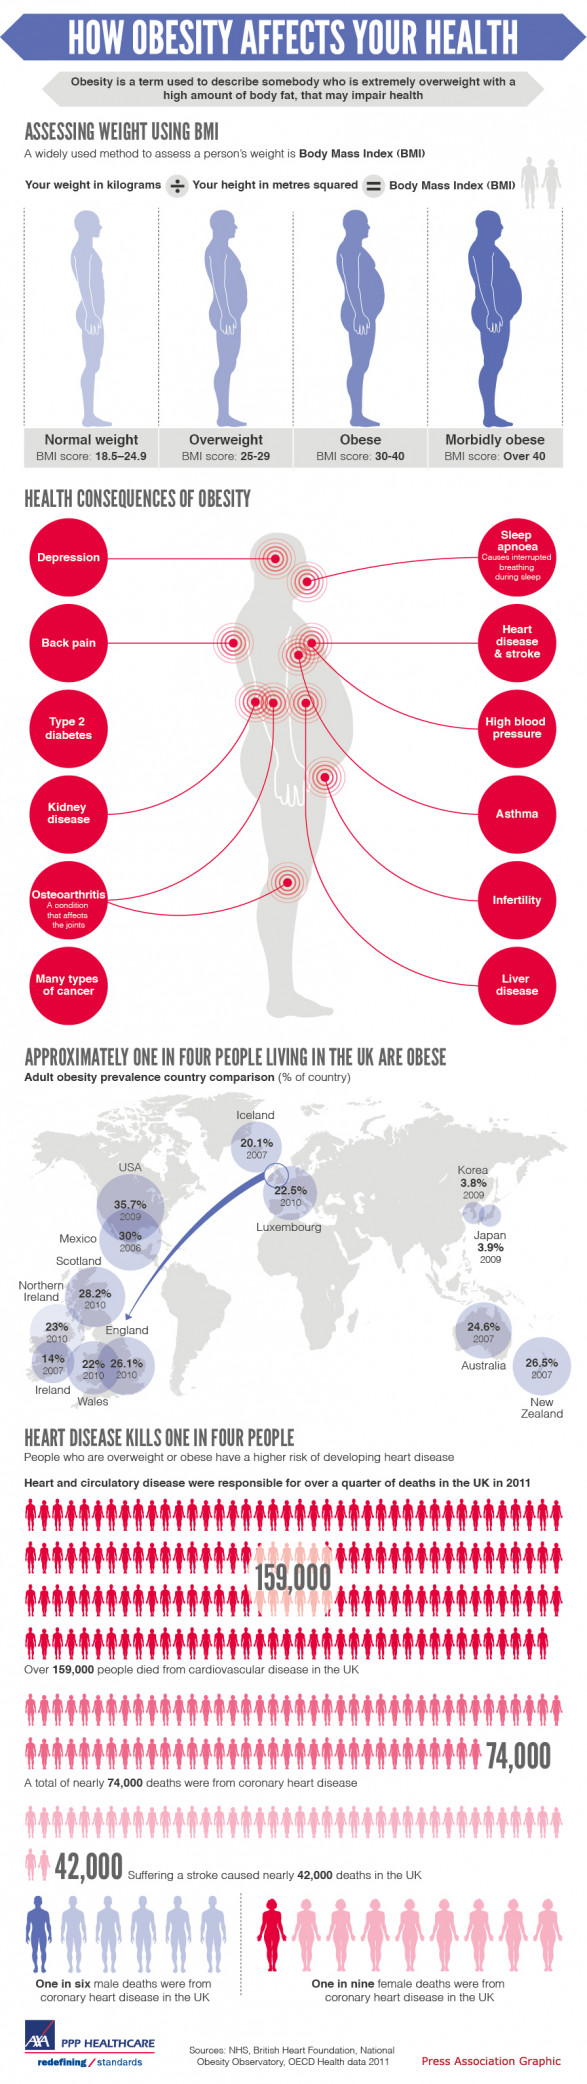 How Obesity Affects Your Health